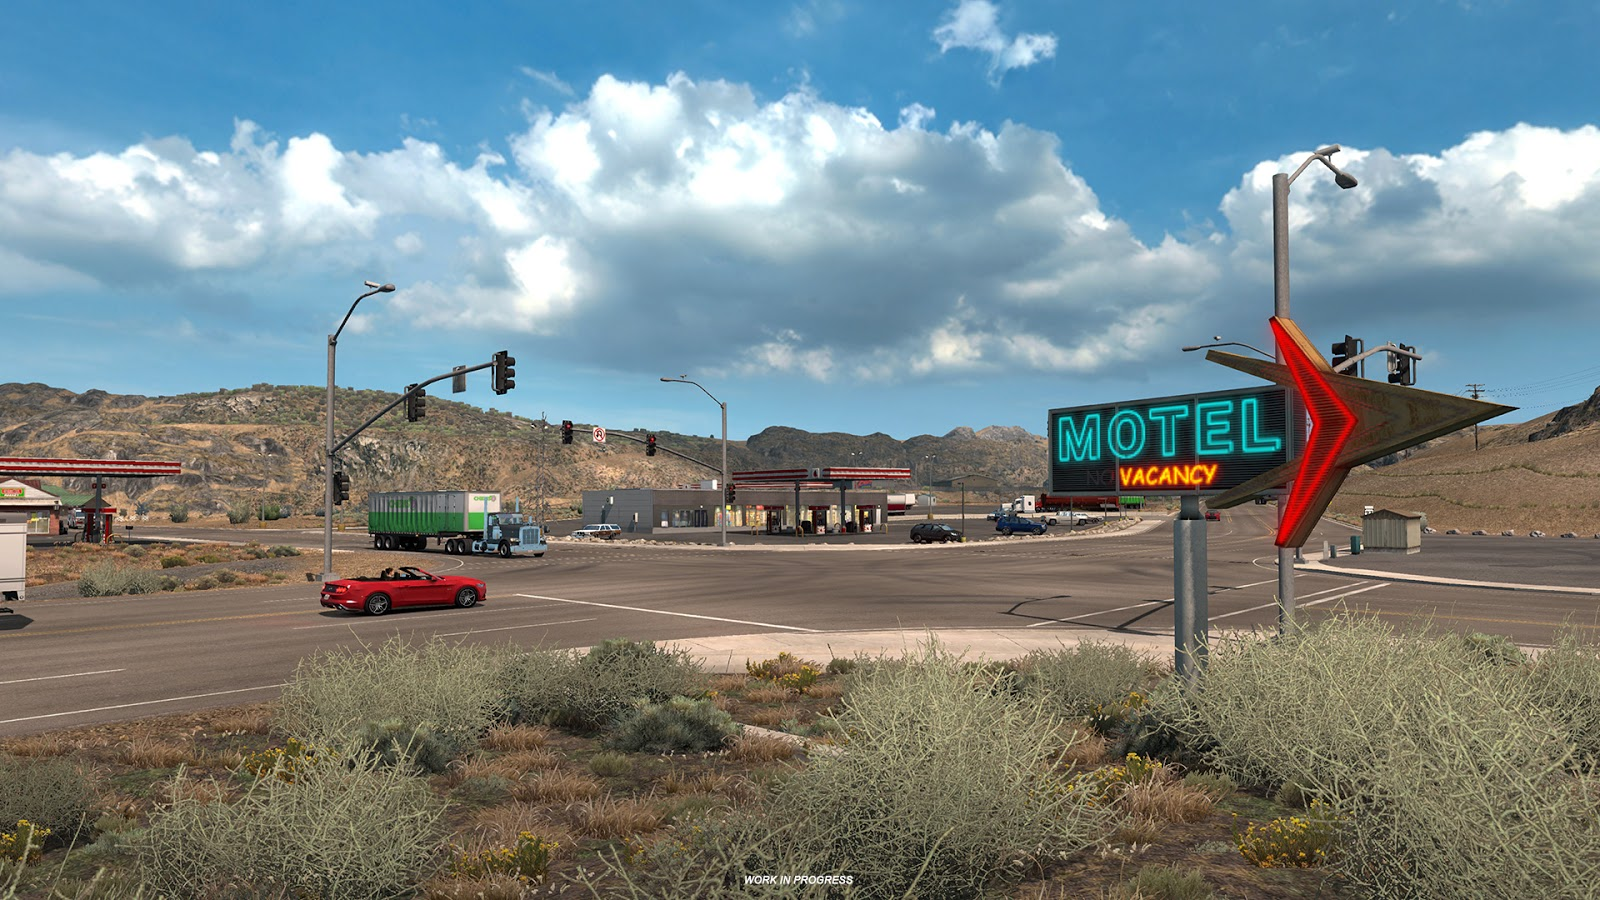 ... Refuel Your Truck, Relax For Awhile, Or Stay Overnight Before  Continuing Your Long Journey. There Are Some Quite Notorious Truck Stops In  Development.